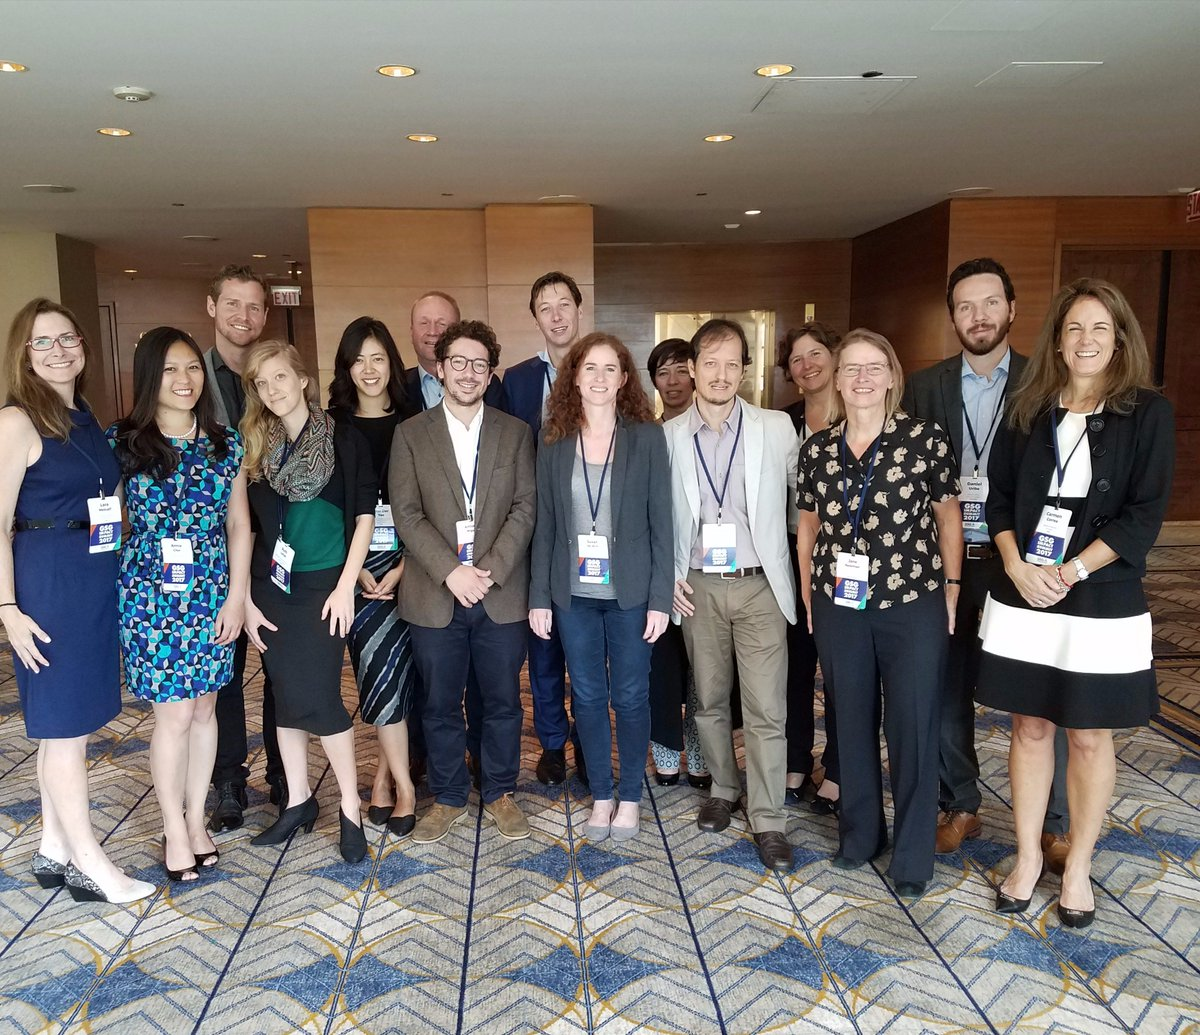 Fun picture from #GSGSummit of Social Finance friends and family orgs.. Awesome #CommunityofPractice  @SocialFinanceUS @socfinuk and Israel!<br>http://pic.twitter.com/jxVI0dXDg5